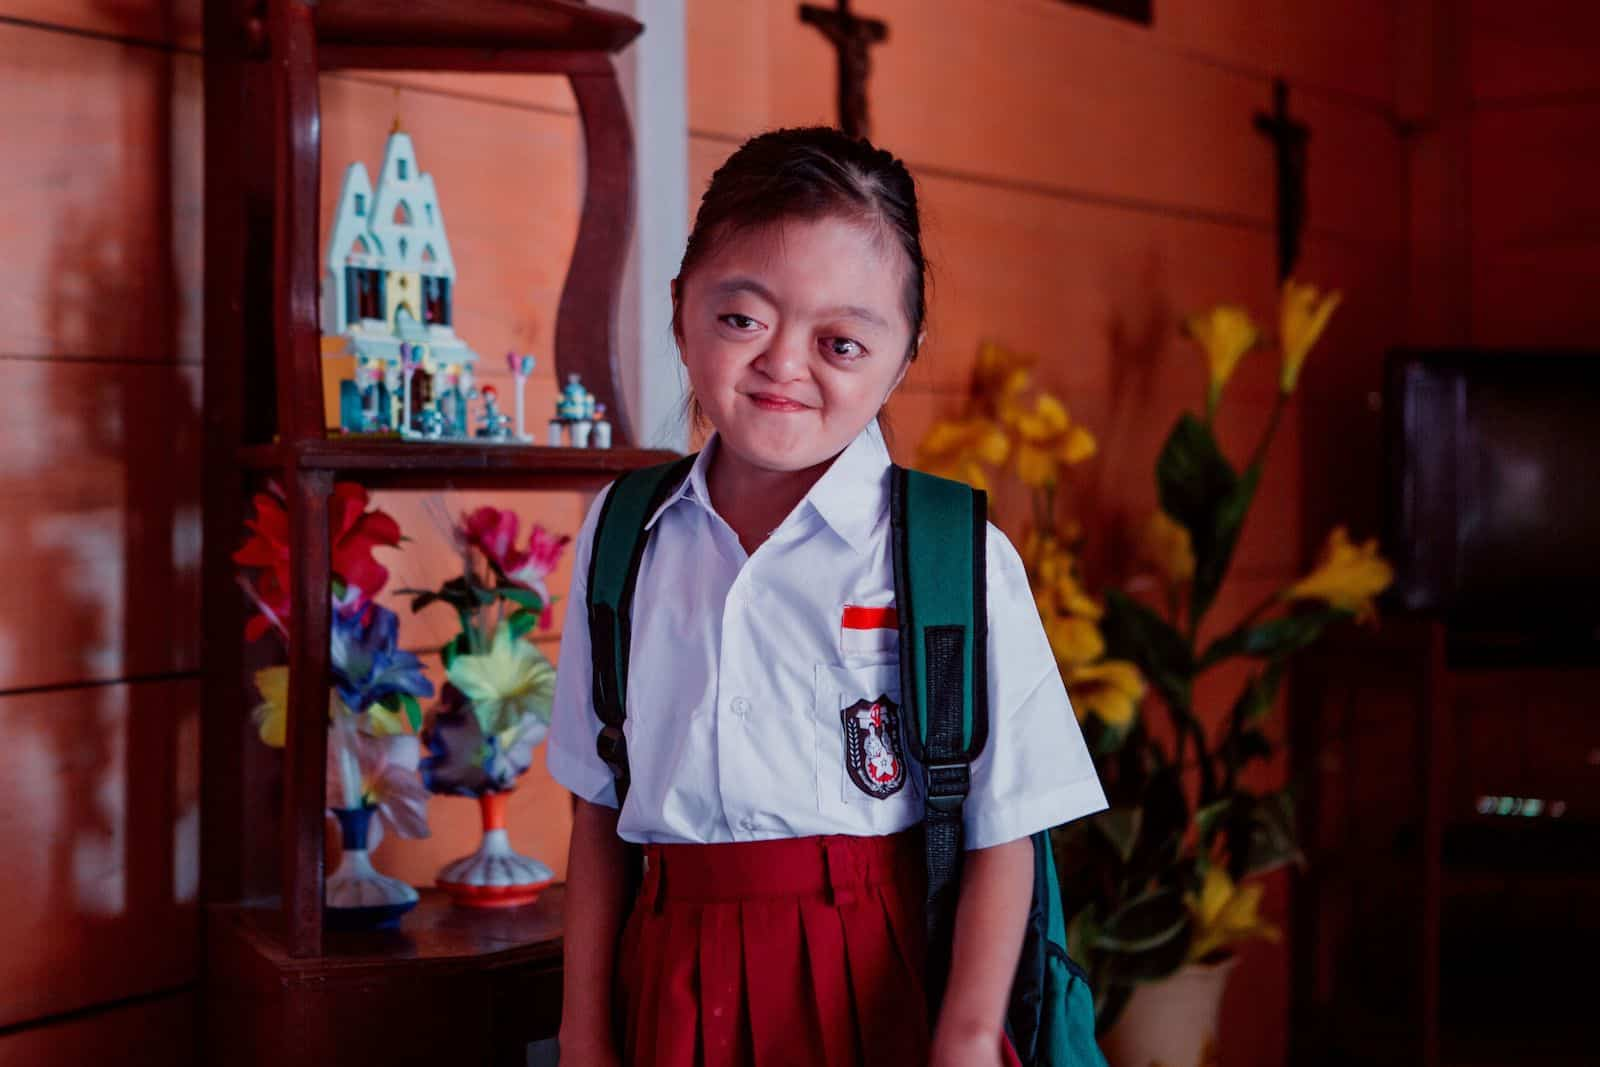 A photo of a girl with Apert Syndrome wearing a red and white school uniform and backpack, standing inside against a red wall.